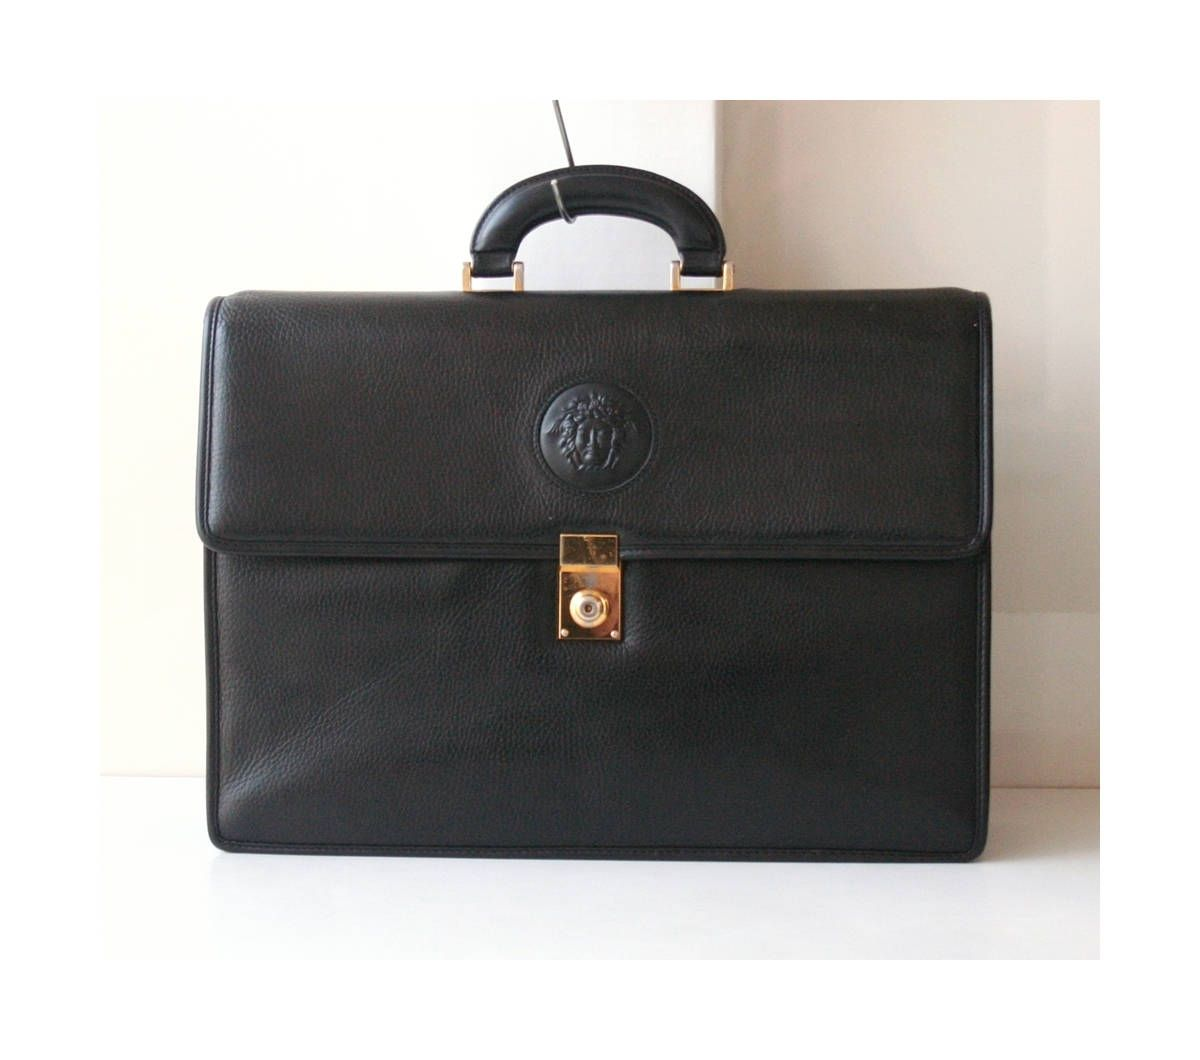 f8a6476fbc Gianni Versace Black Leather Briefcase vintage authentic Handbag Medusa by  hfvin on Etsy  versace  black  medusa  briefcase  handbag  hfvin